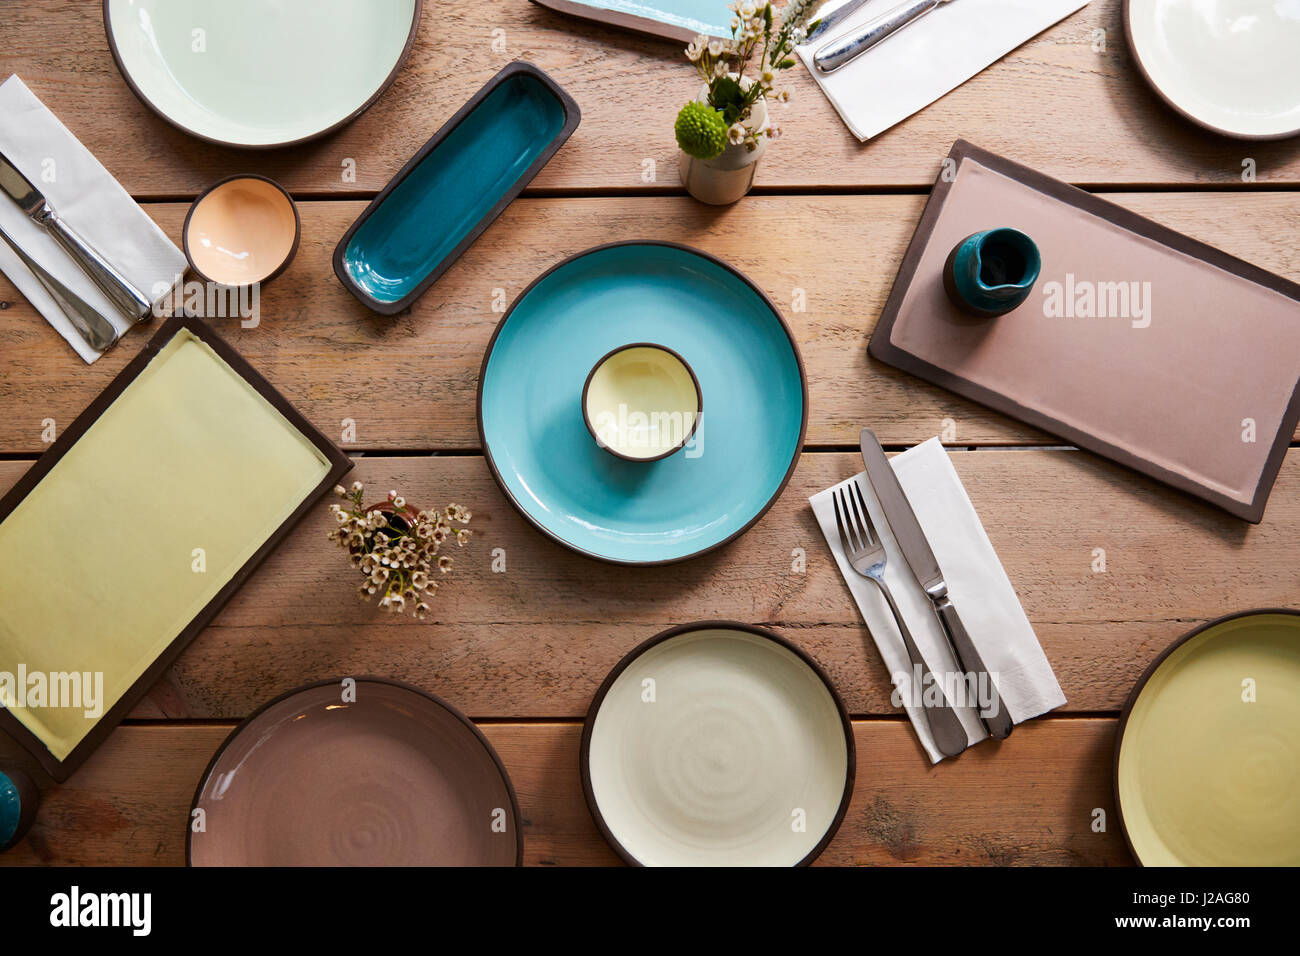 Handmade earthenware and cutlery on a table, overhead shot - Stock Image